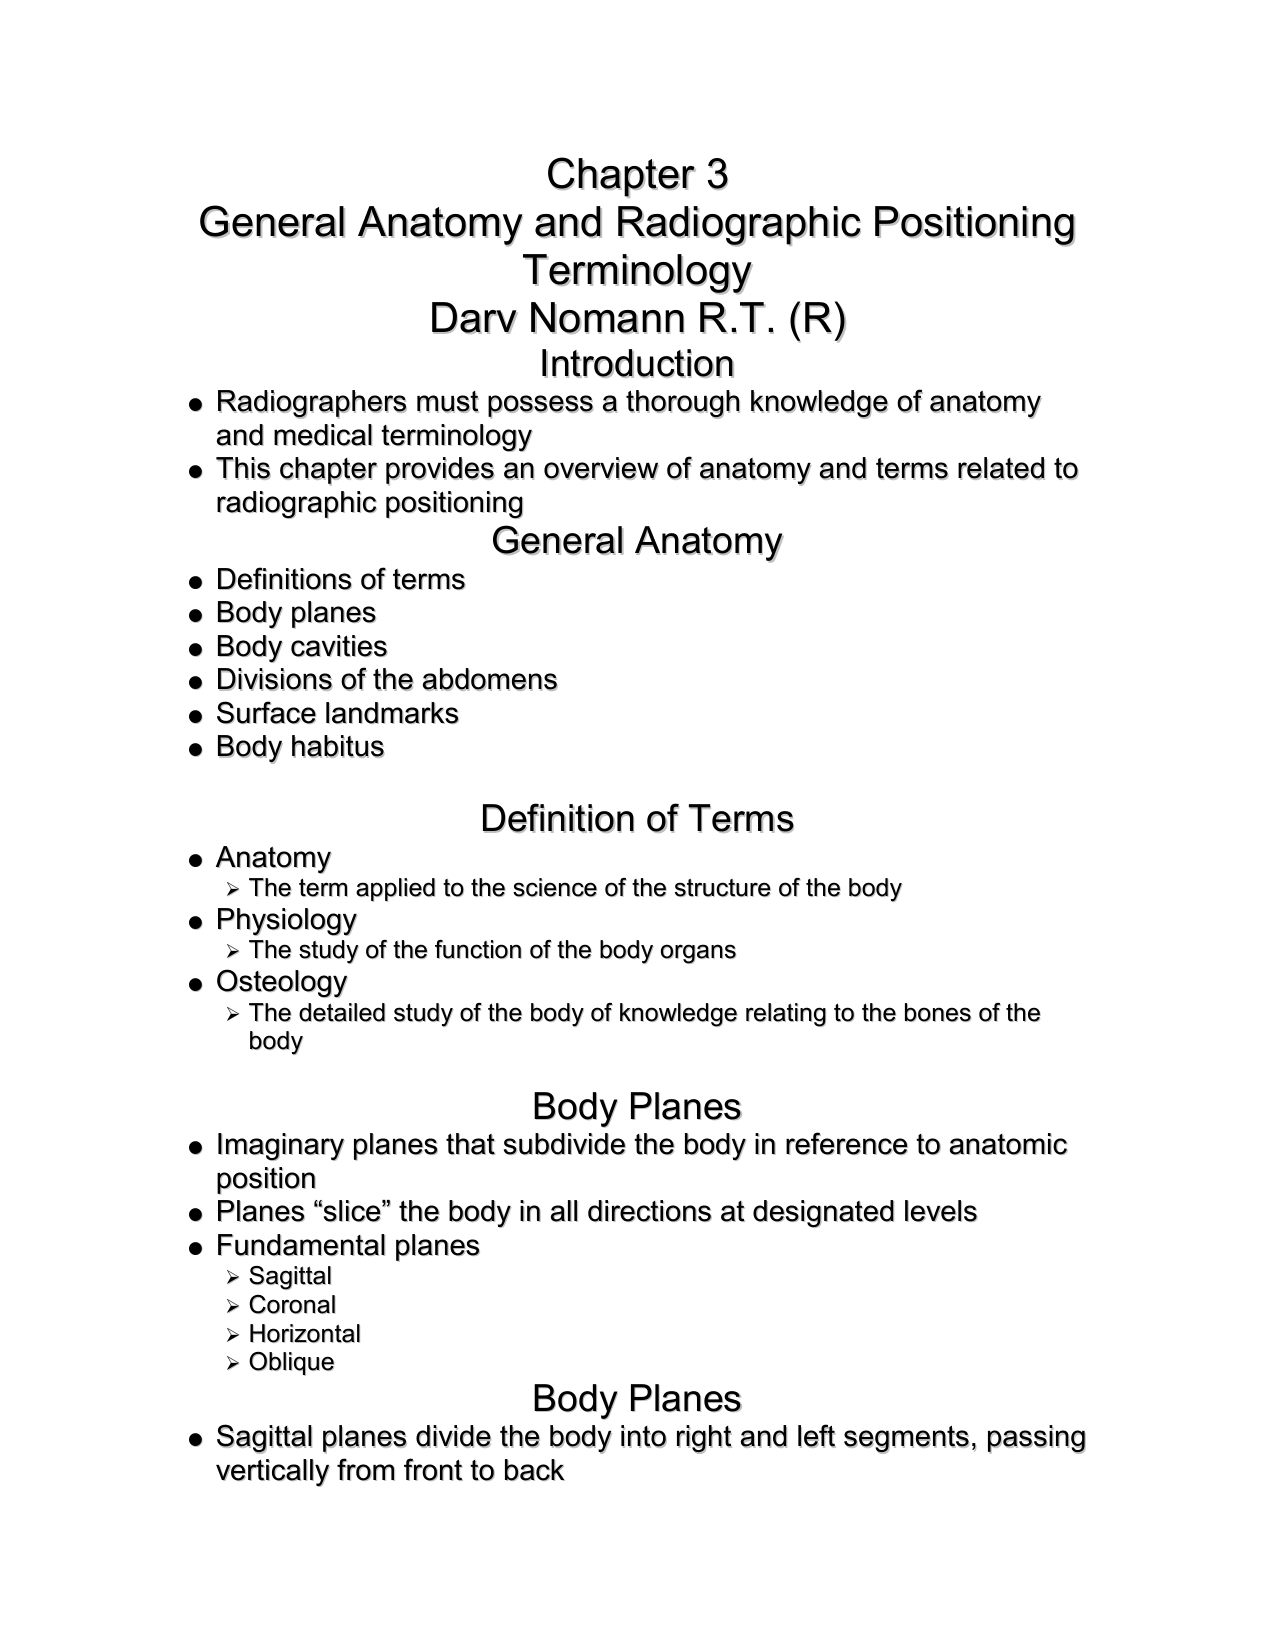 Chapter 3 General Anatomy and Radiographic Positioning